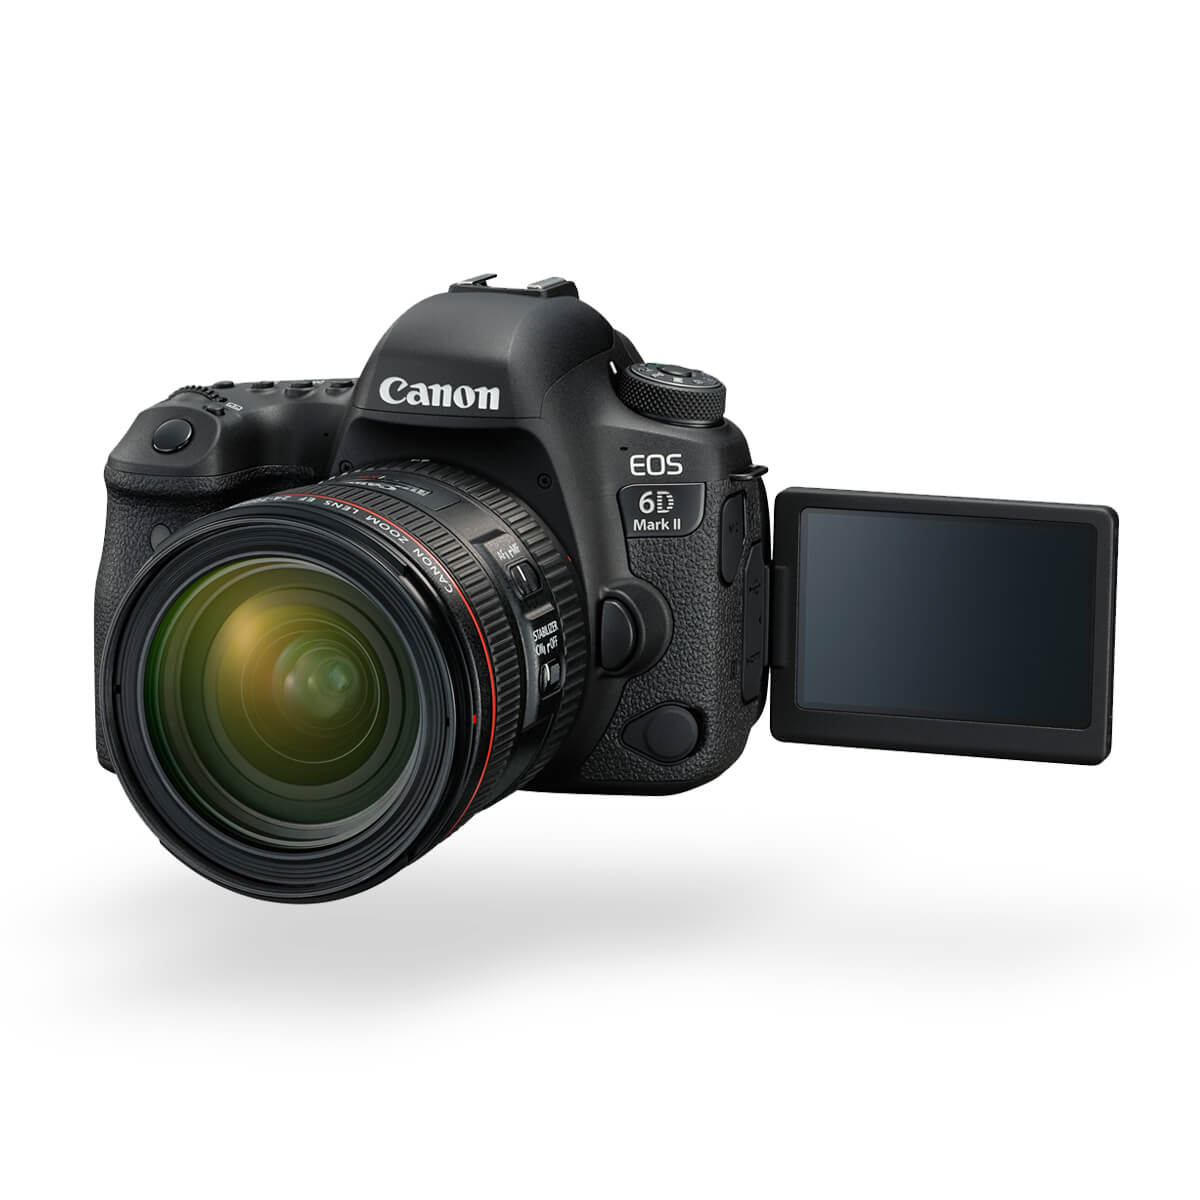 Canon EOS 6D Mark II with flip out LCD hero image